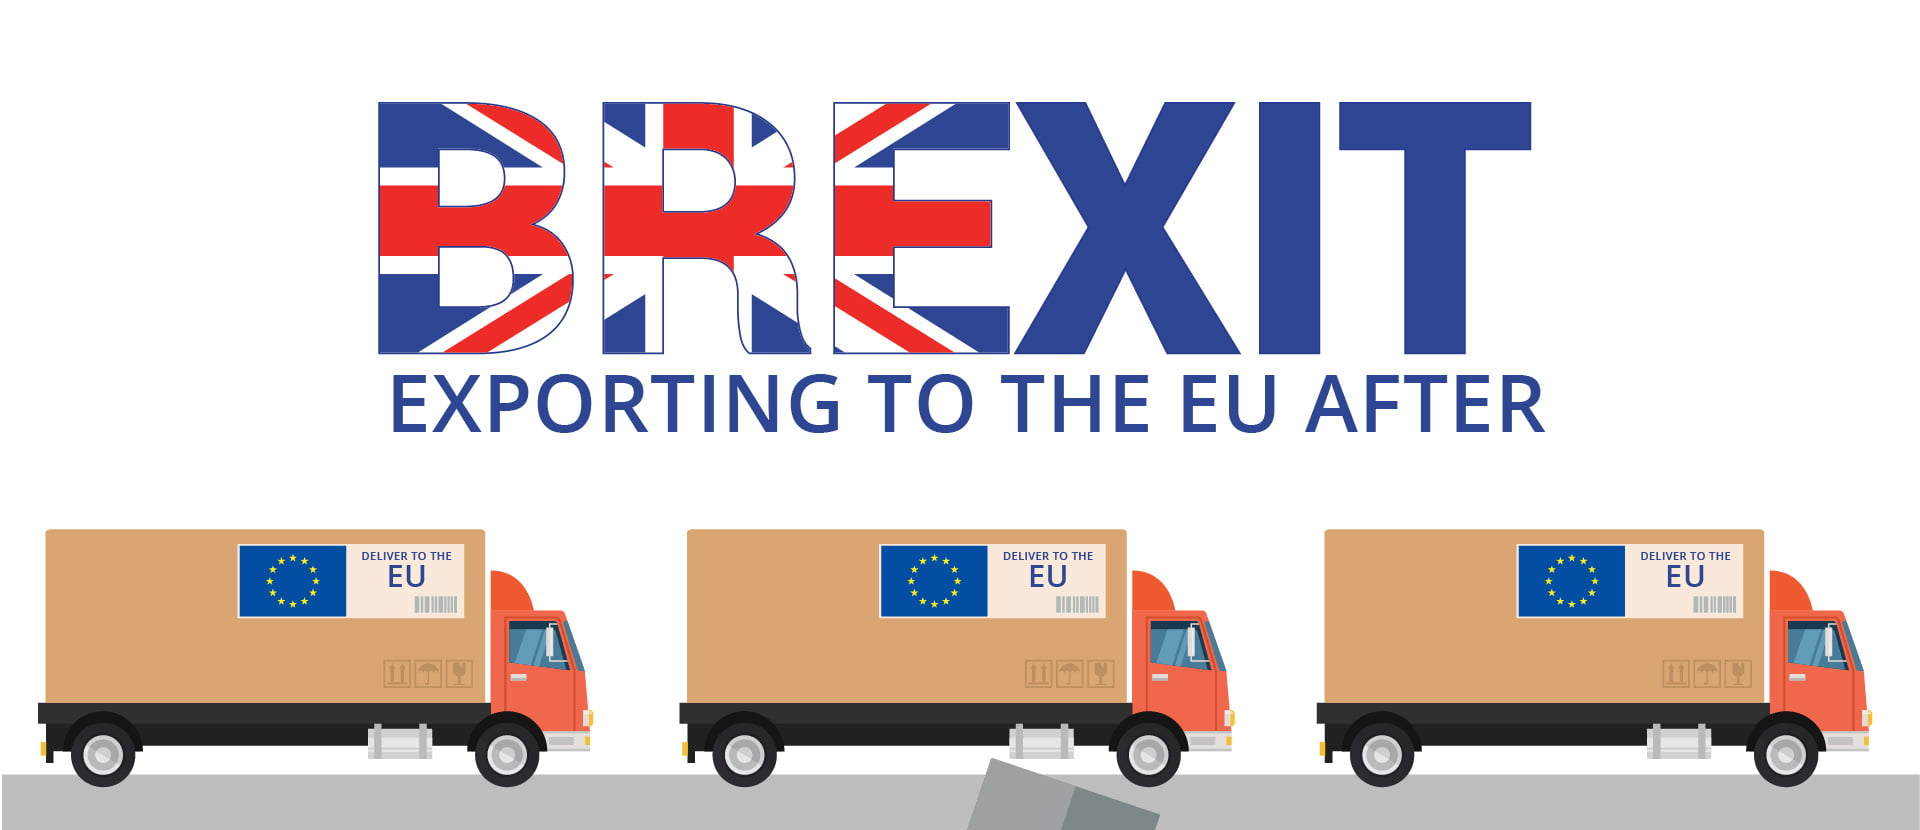 BREXIT - exporting to the EU